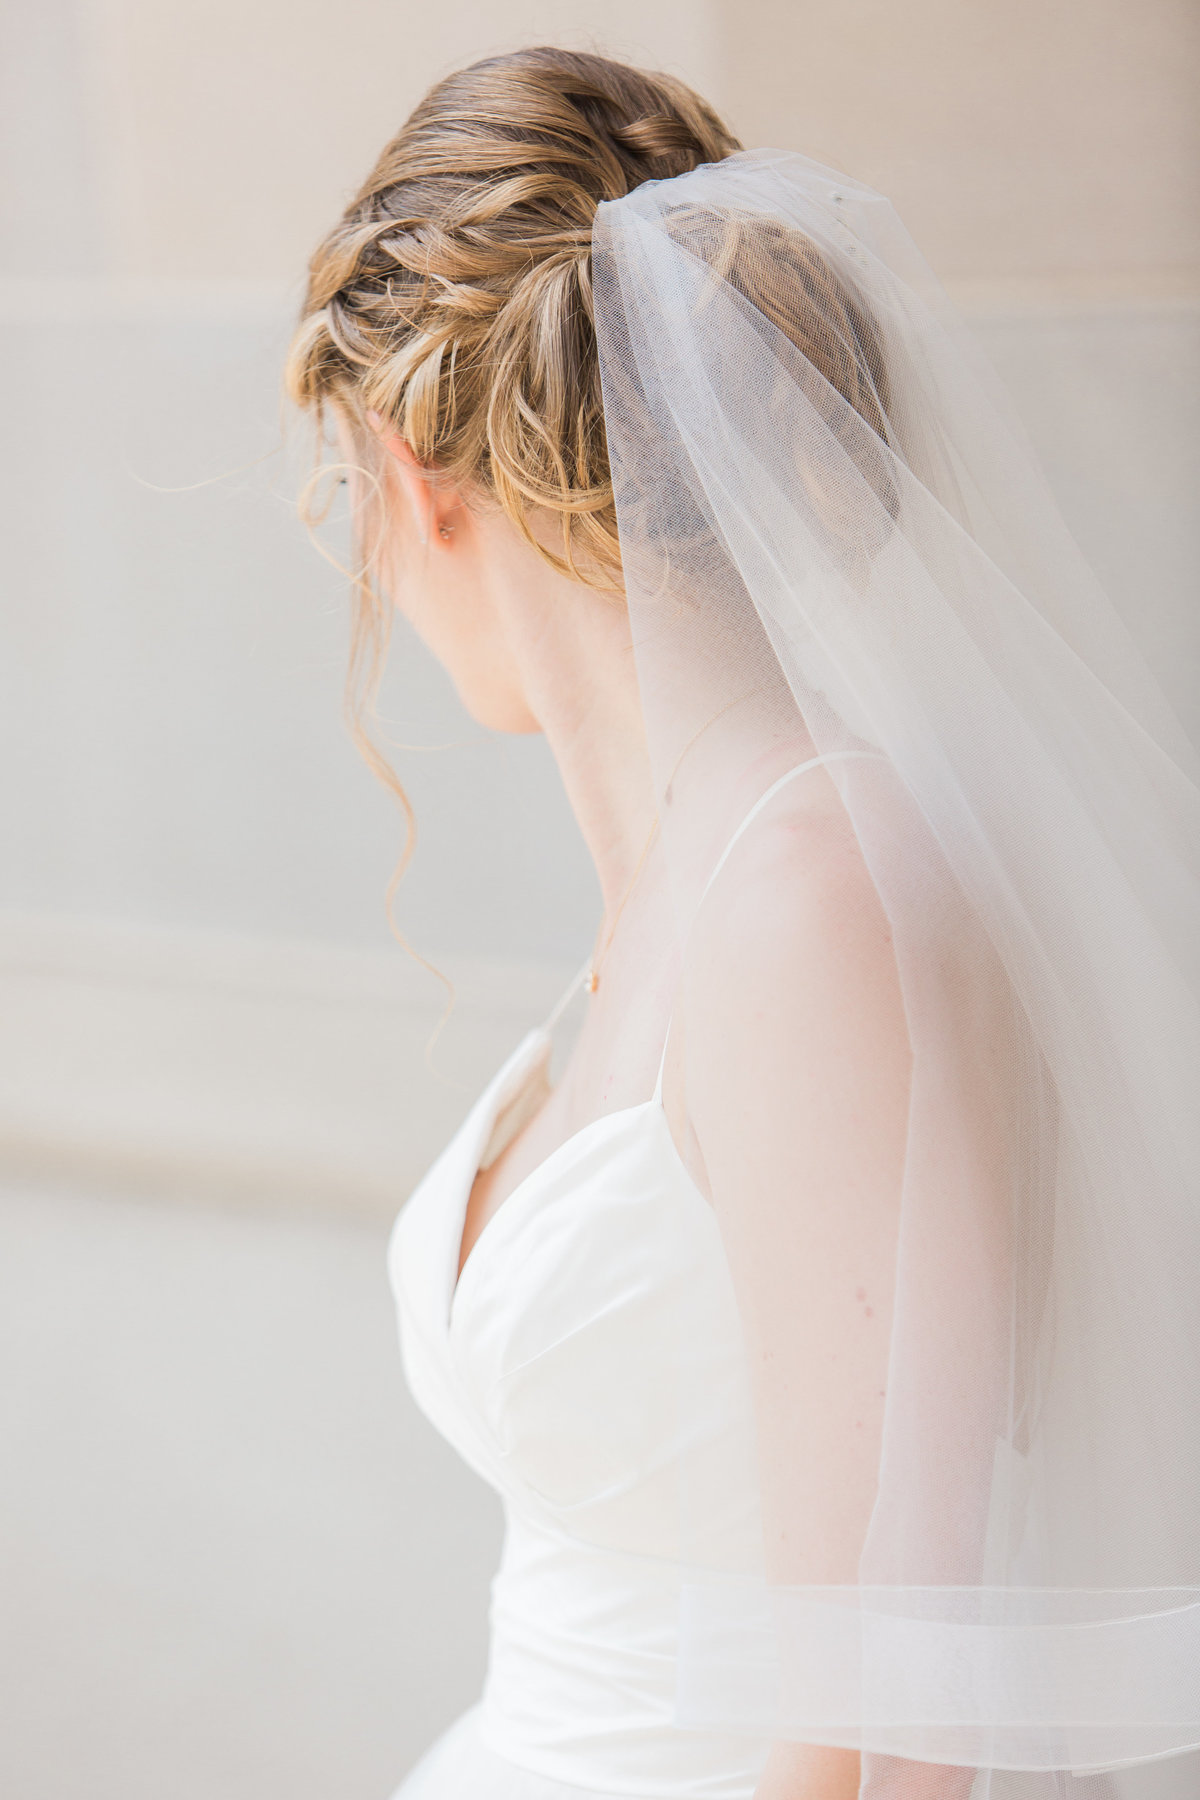 Basilica of the Sacred Heart Wedding Veil Photo